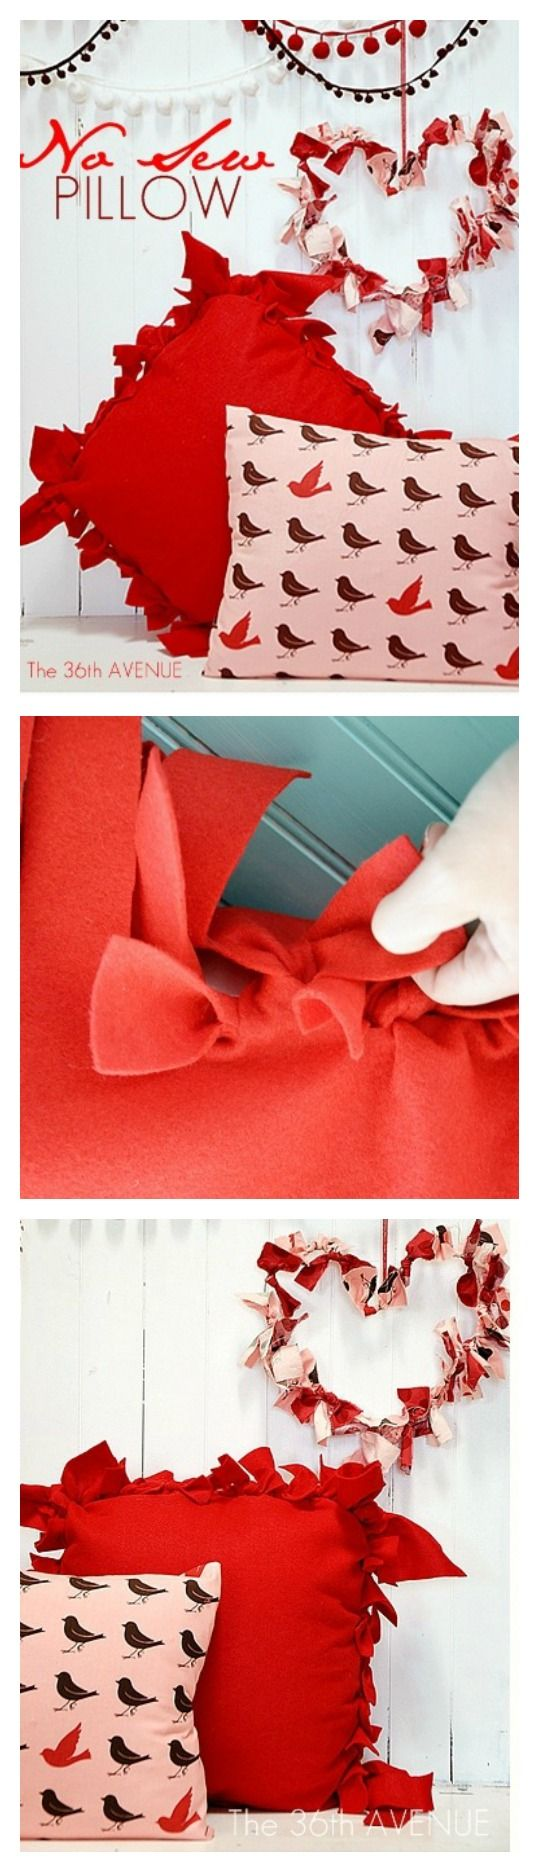 Cute Pillow Ideas To Sew : DIY No Sew Pillow Tutorial No sew fleece, Tutorials and Cute pillows